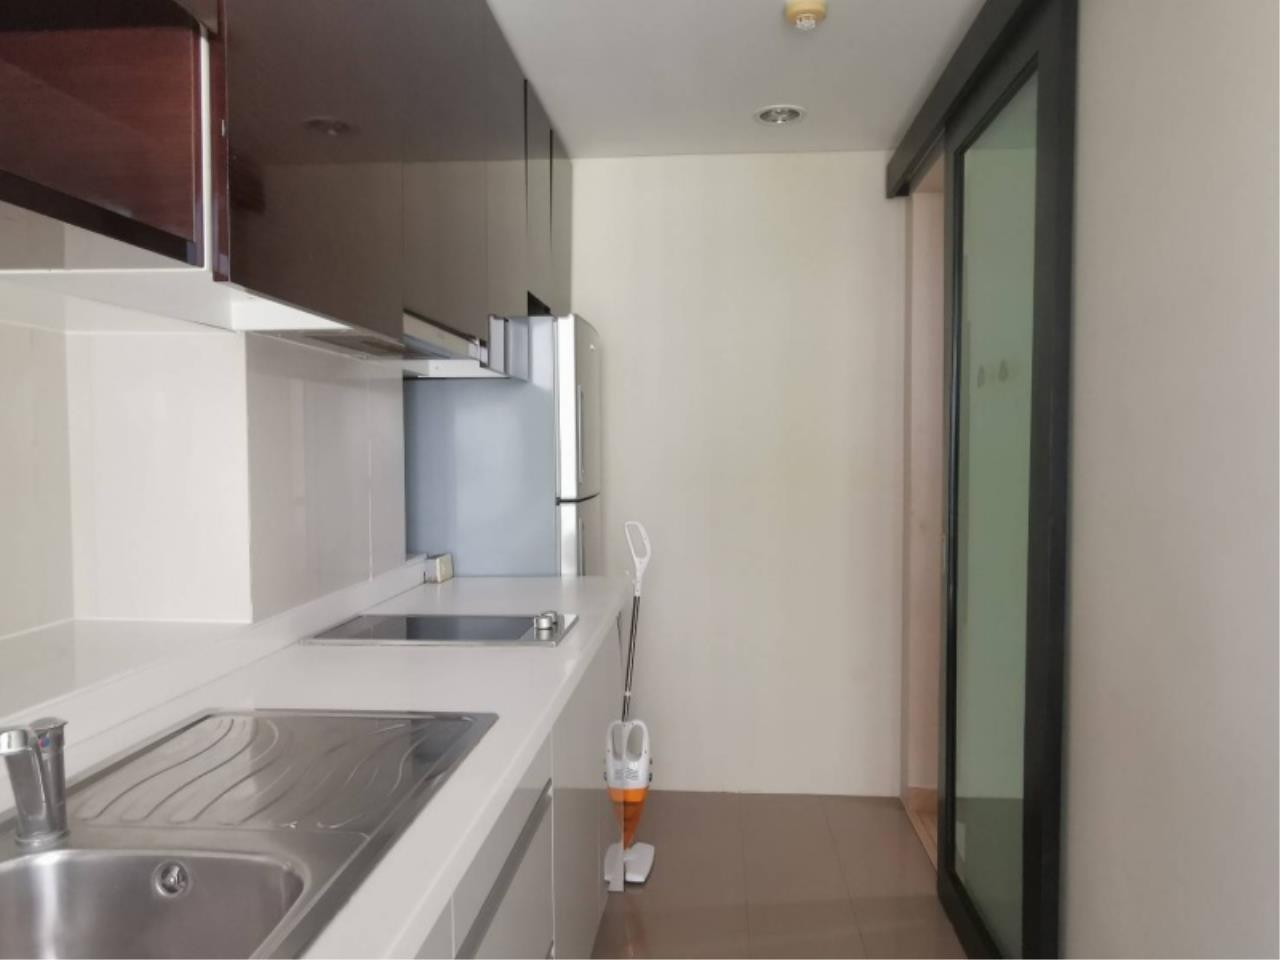 Century21 Skylux Agency's The Address Pathumwan / Condo For Rent / 1 Bedroom / 48.91 SQM / BTS Ratchathewi / Bangkok 10